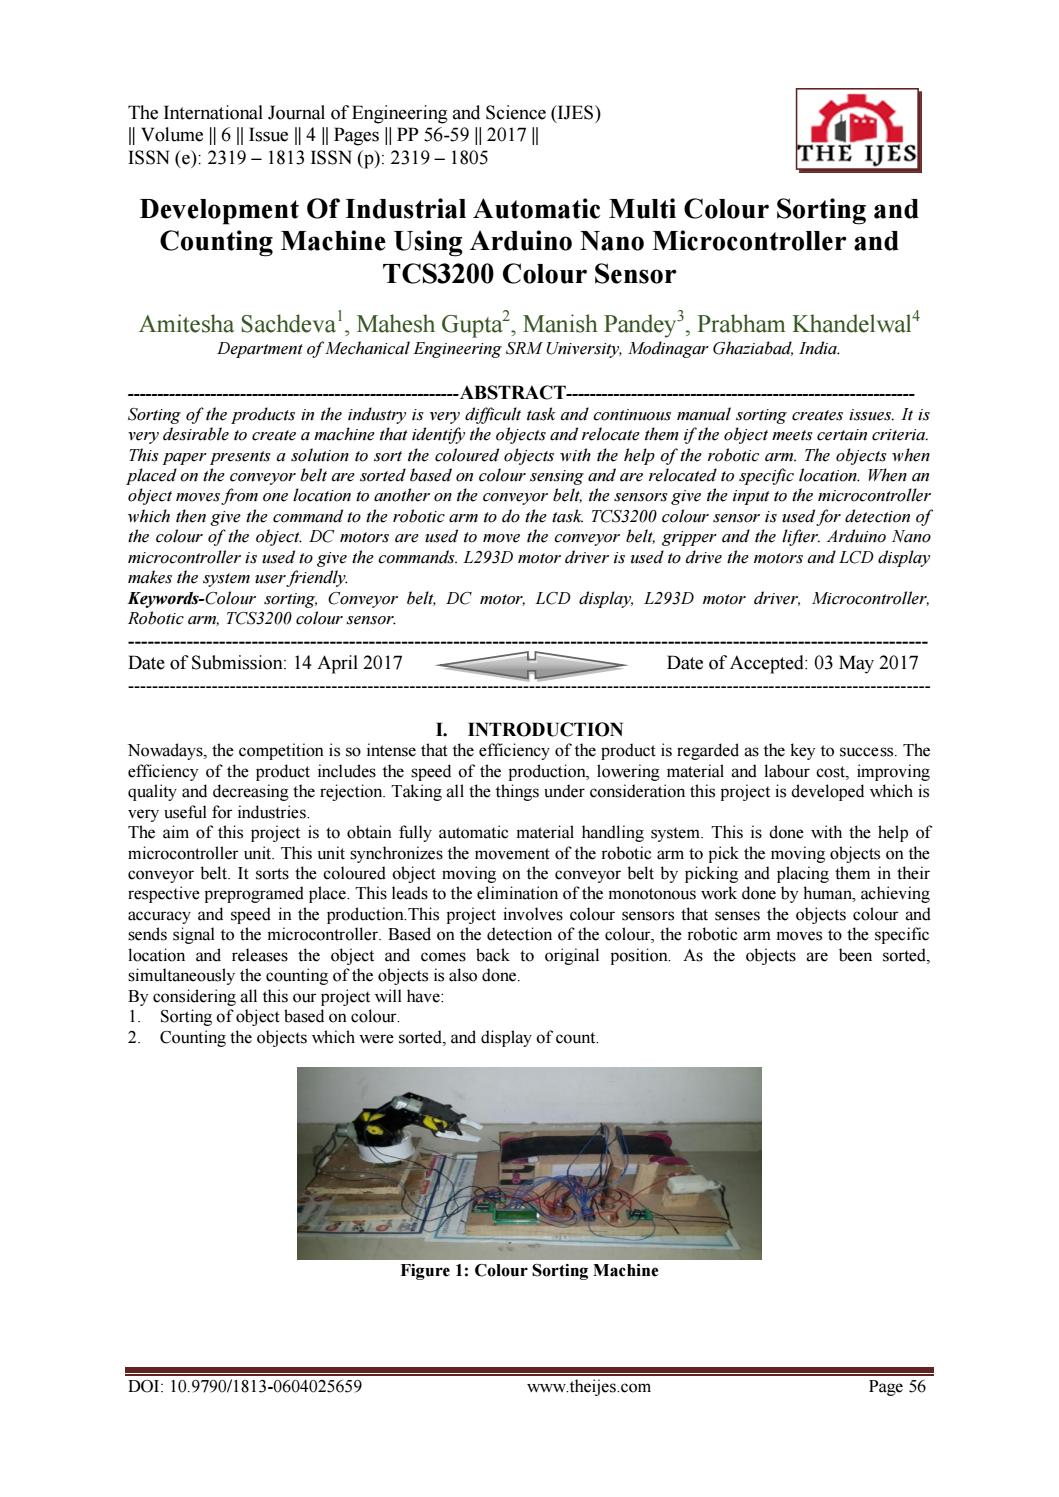 Development Of Industrial Automatic Multi Colour Sorting and